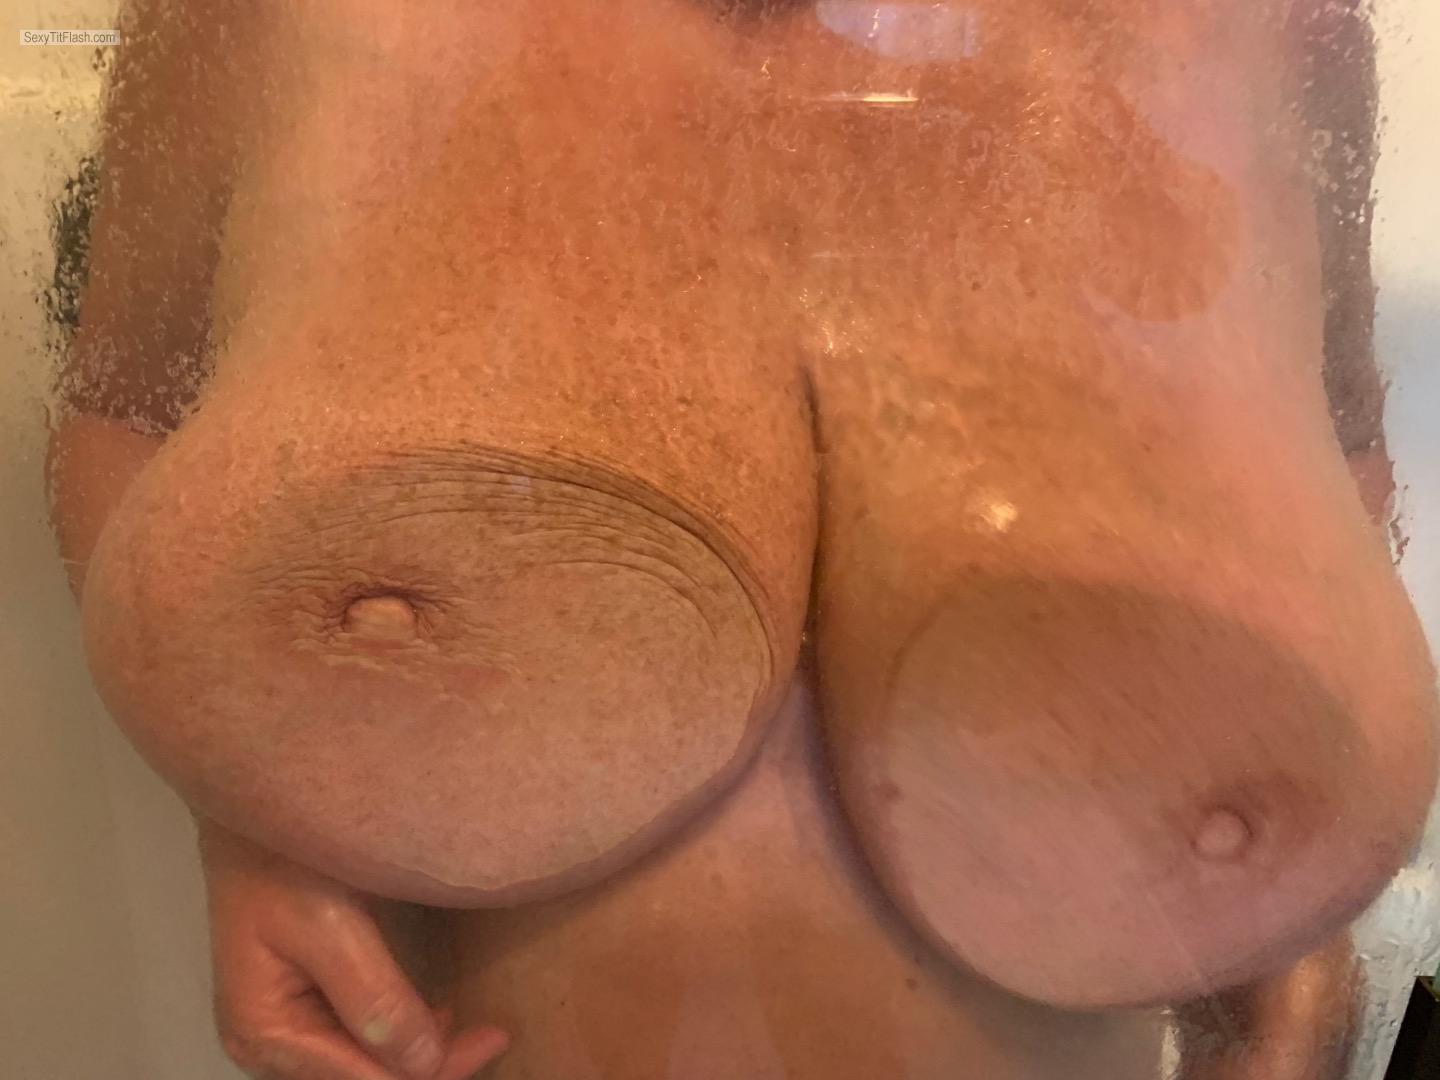 Tit Flash: Wife's Very Big Tits - Boobilicious from United States